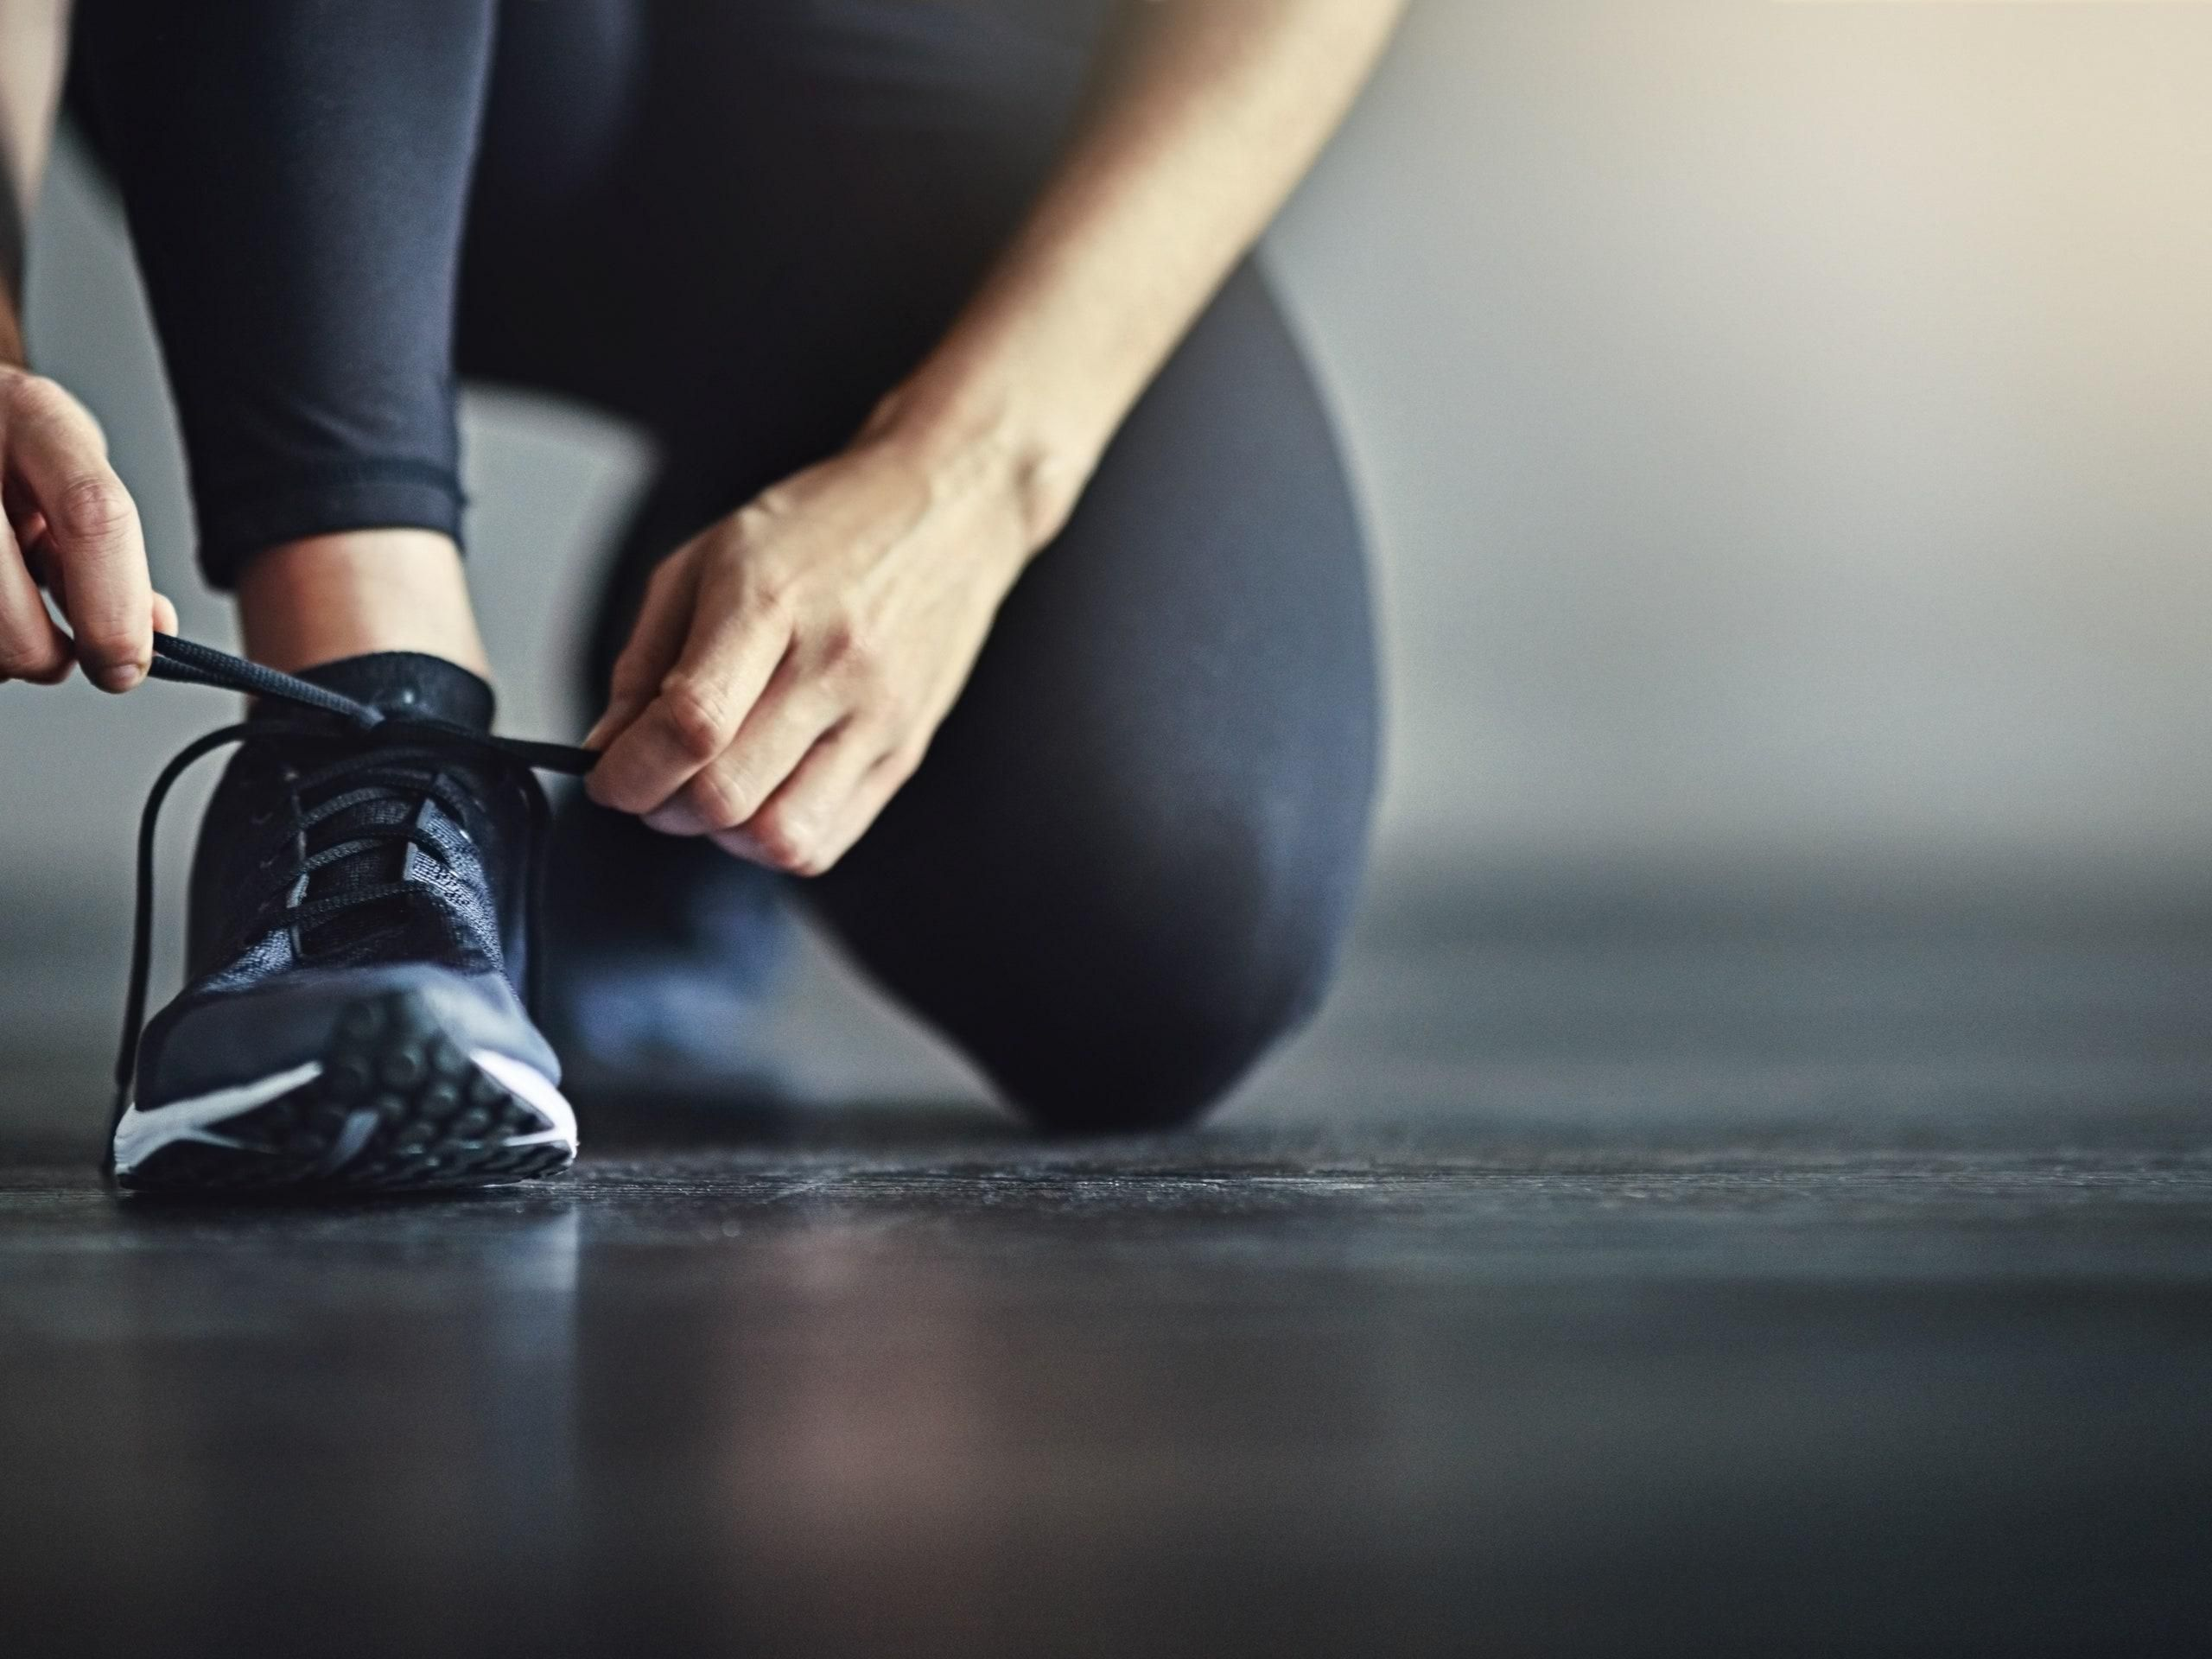 Does It Matter What Type Of Shoe You Wear To Workout?